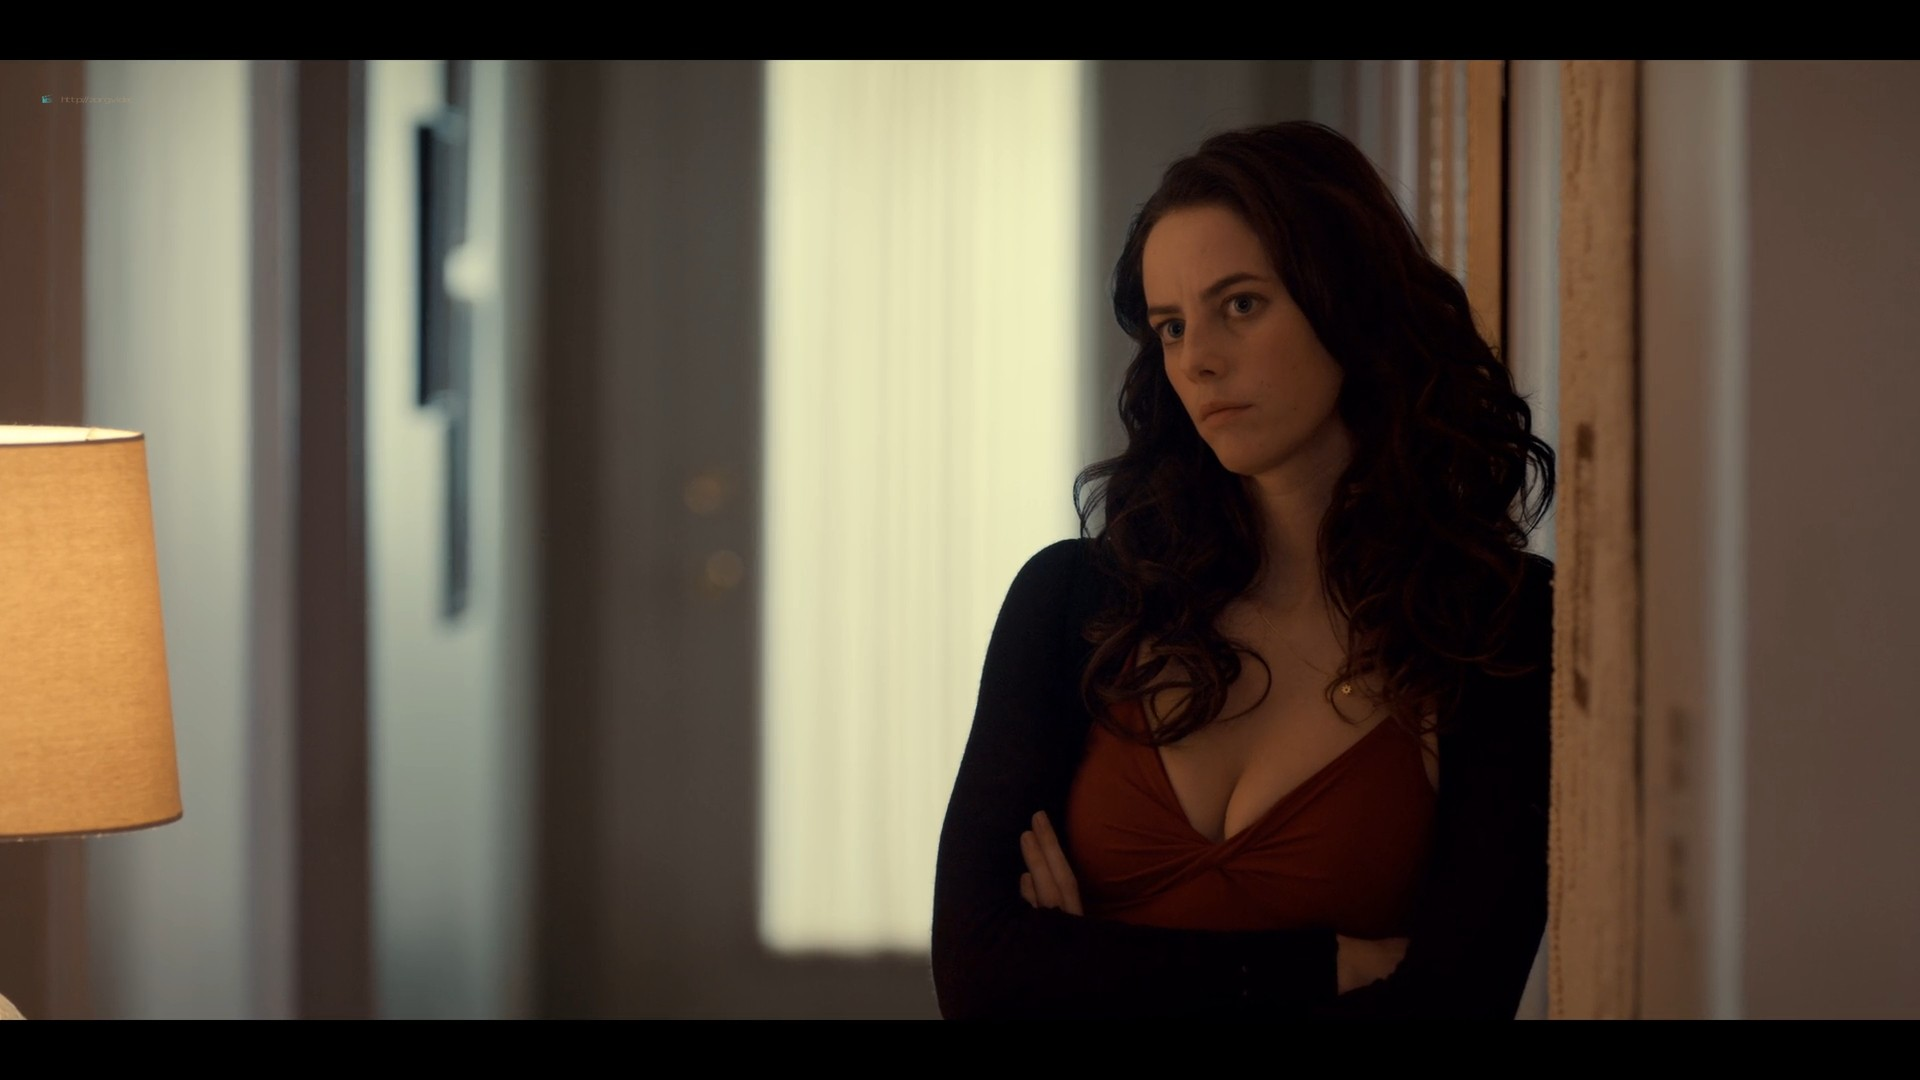 Kaya Scodelario sexy January Jones, Willow Shields hot - Spinning Out (2020) s1e5-6 HD 1080p (8)